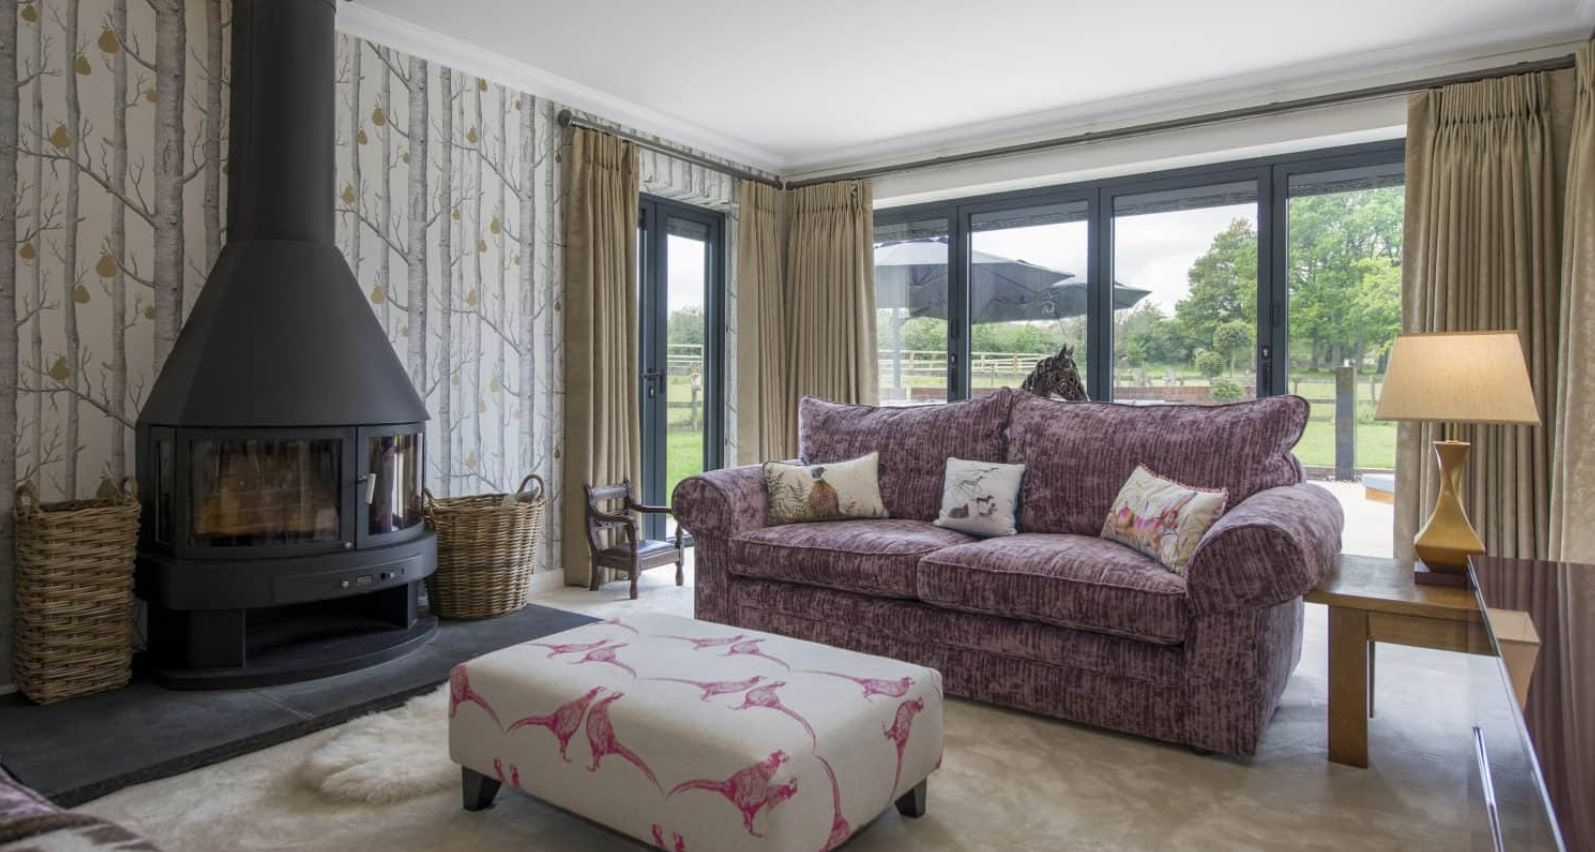 Stunning traditional property given new life with Express Bi-Folding Doors